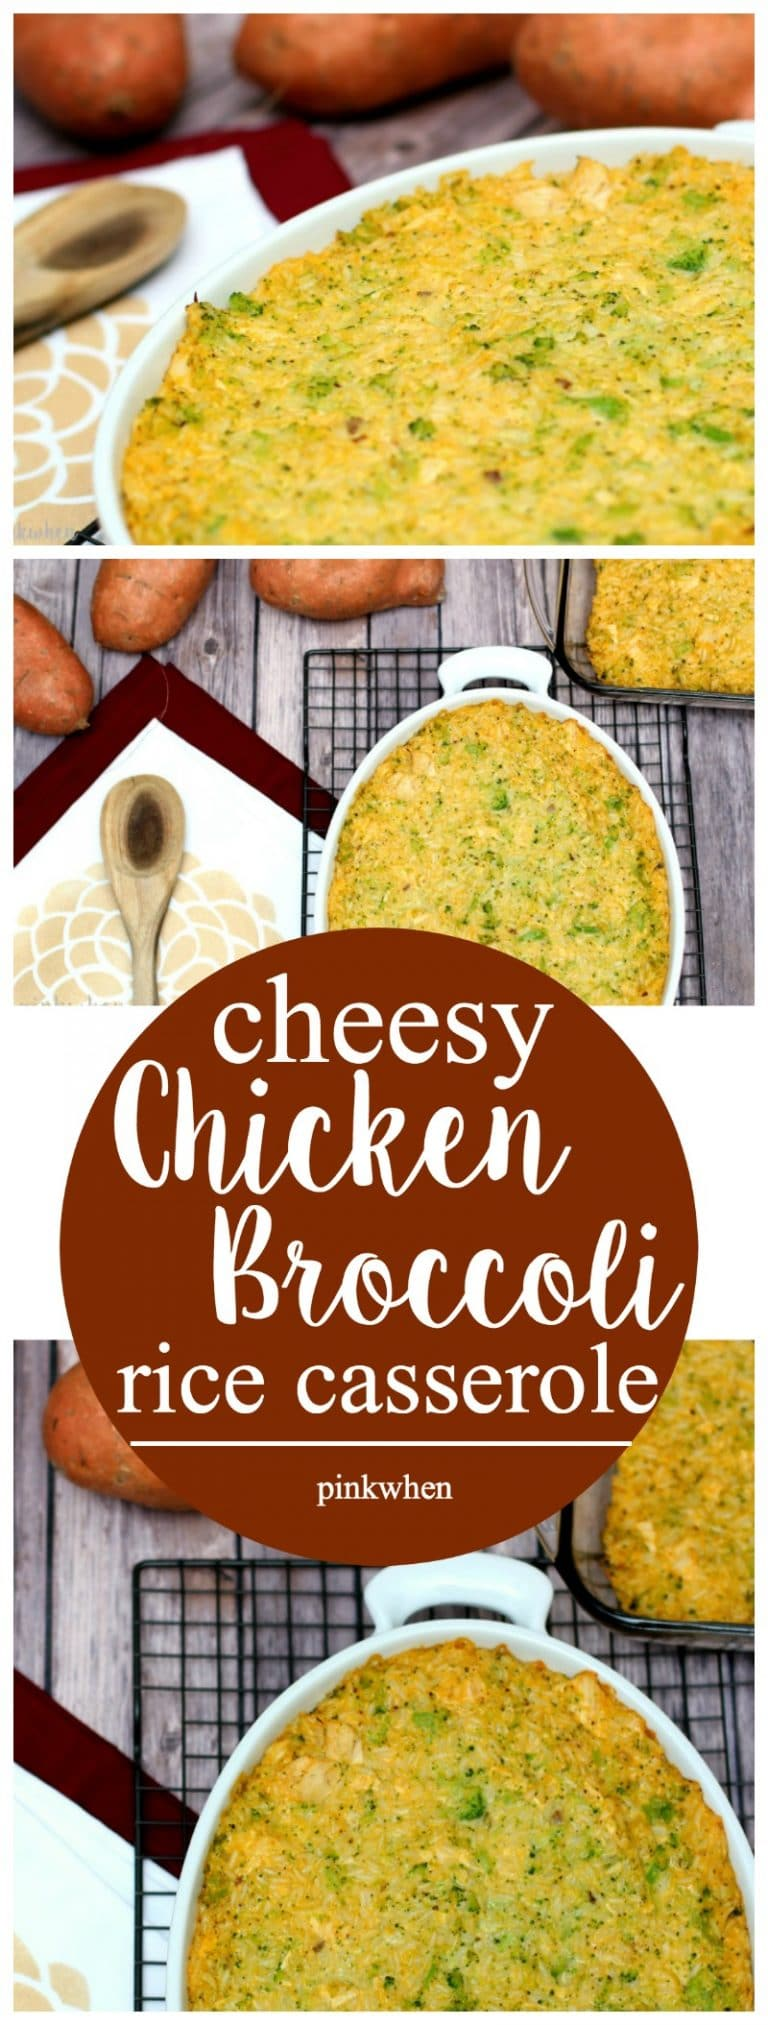 Looking for a Thanksgiving side dish? This Cheesy Chicken Broccoli Rice Casserole is AMAZING! So easy and so good. | PinkWhen